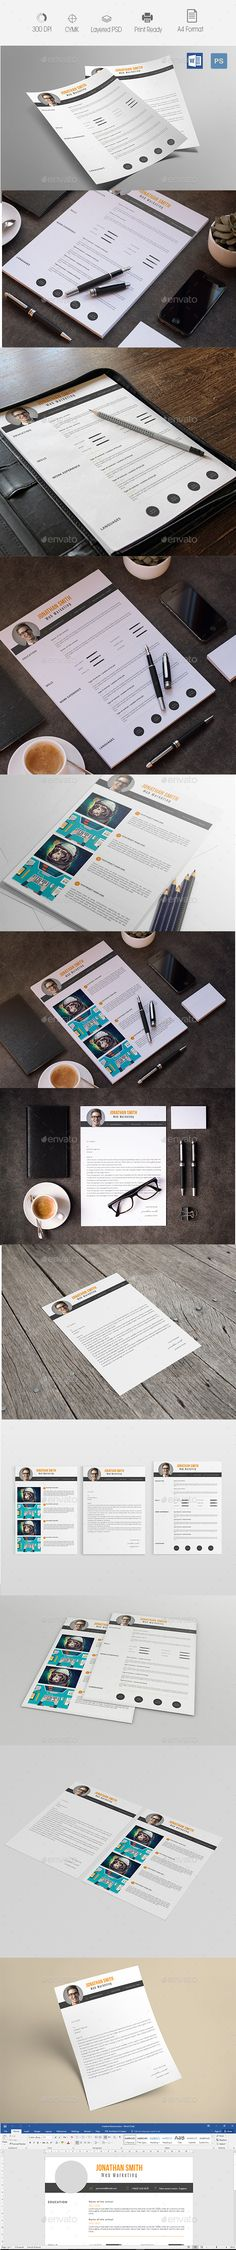 Creative Resume & Cover Letter — Photoshop PSD #resume templates #cv template • Available here → https://graphicriver.net/item/creative-resume-cover-letter-/14547990?ref=pxcr